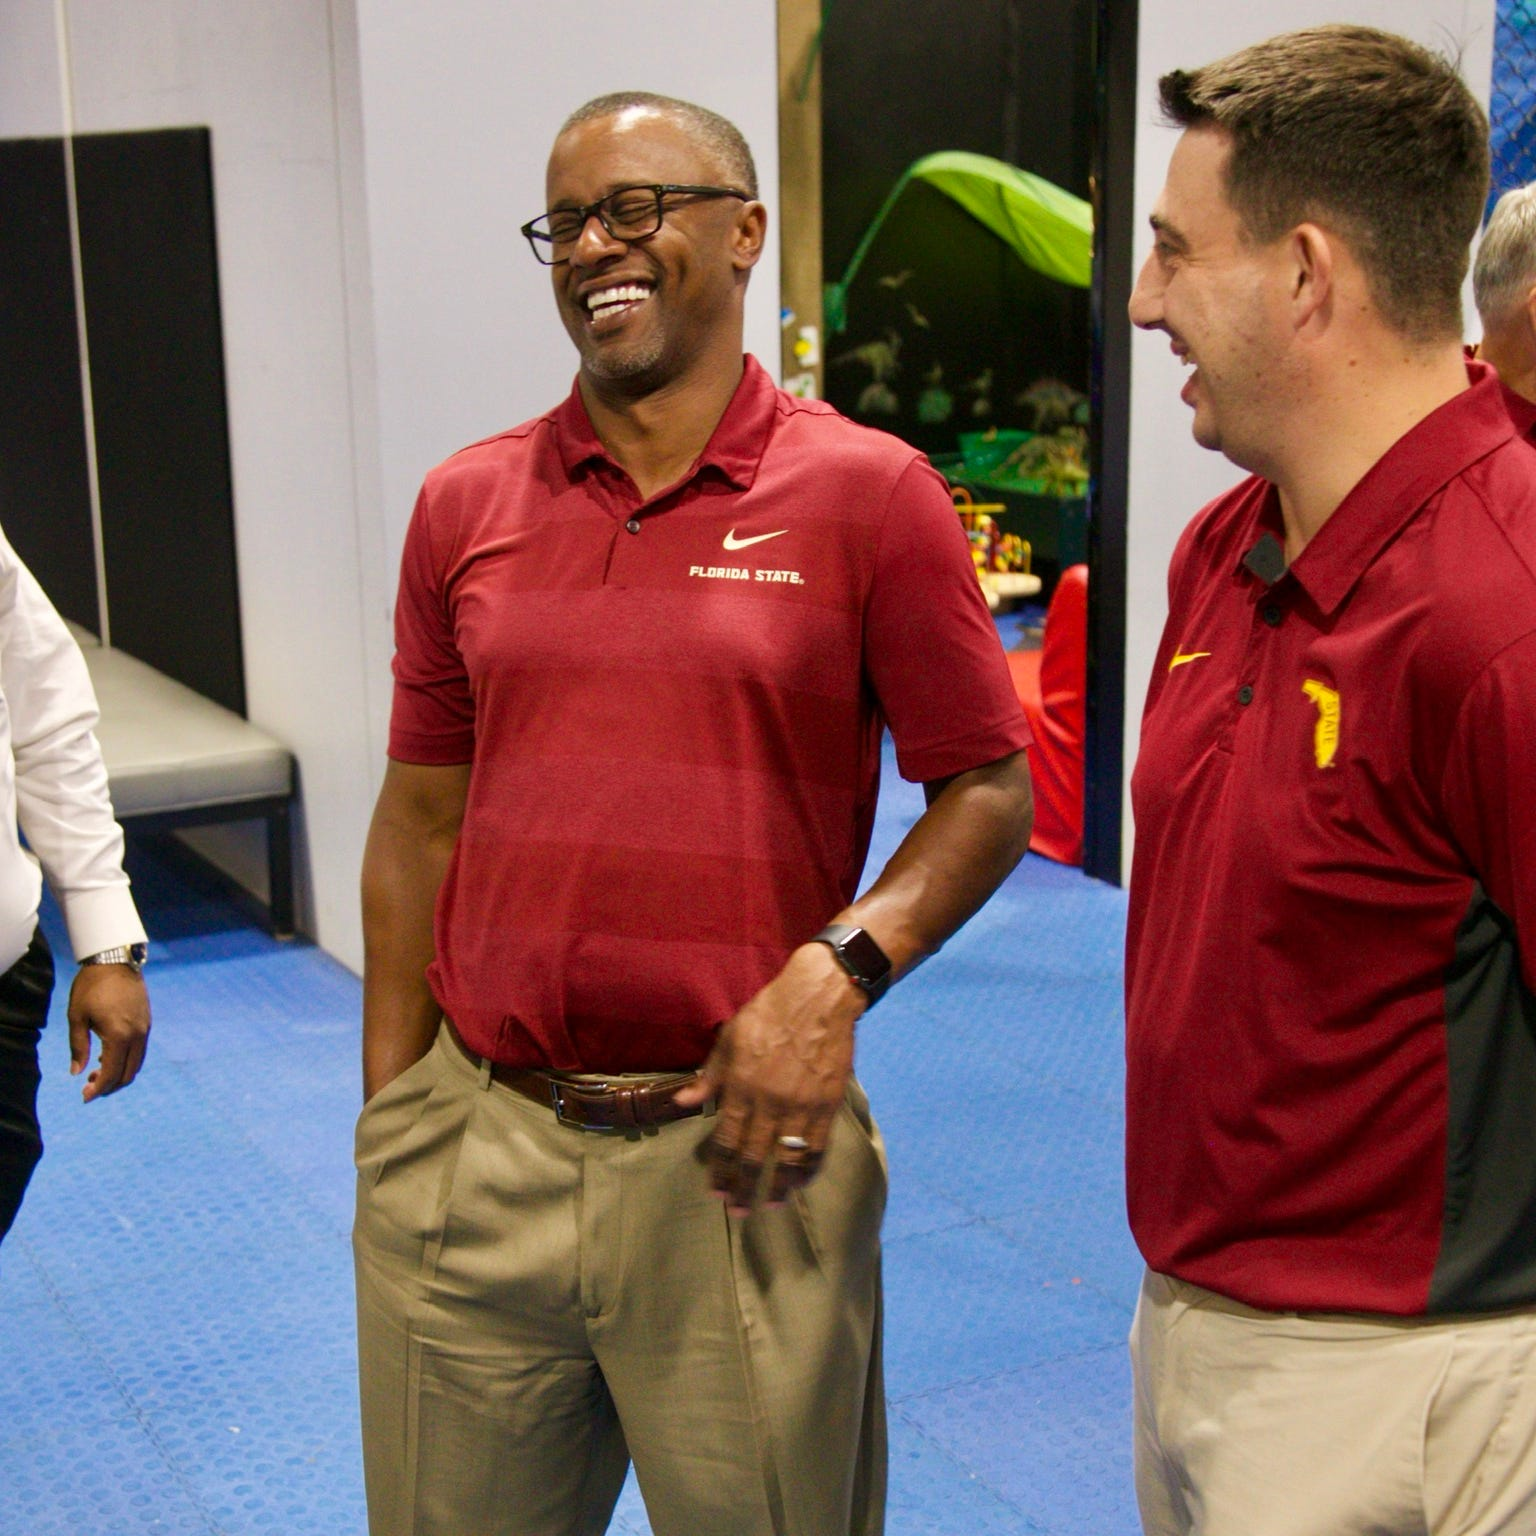 Florida State coach Willie Taggart discusses state of the program during Fort Myers trip